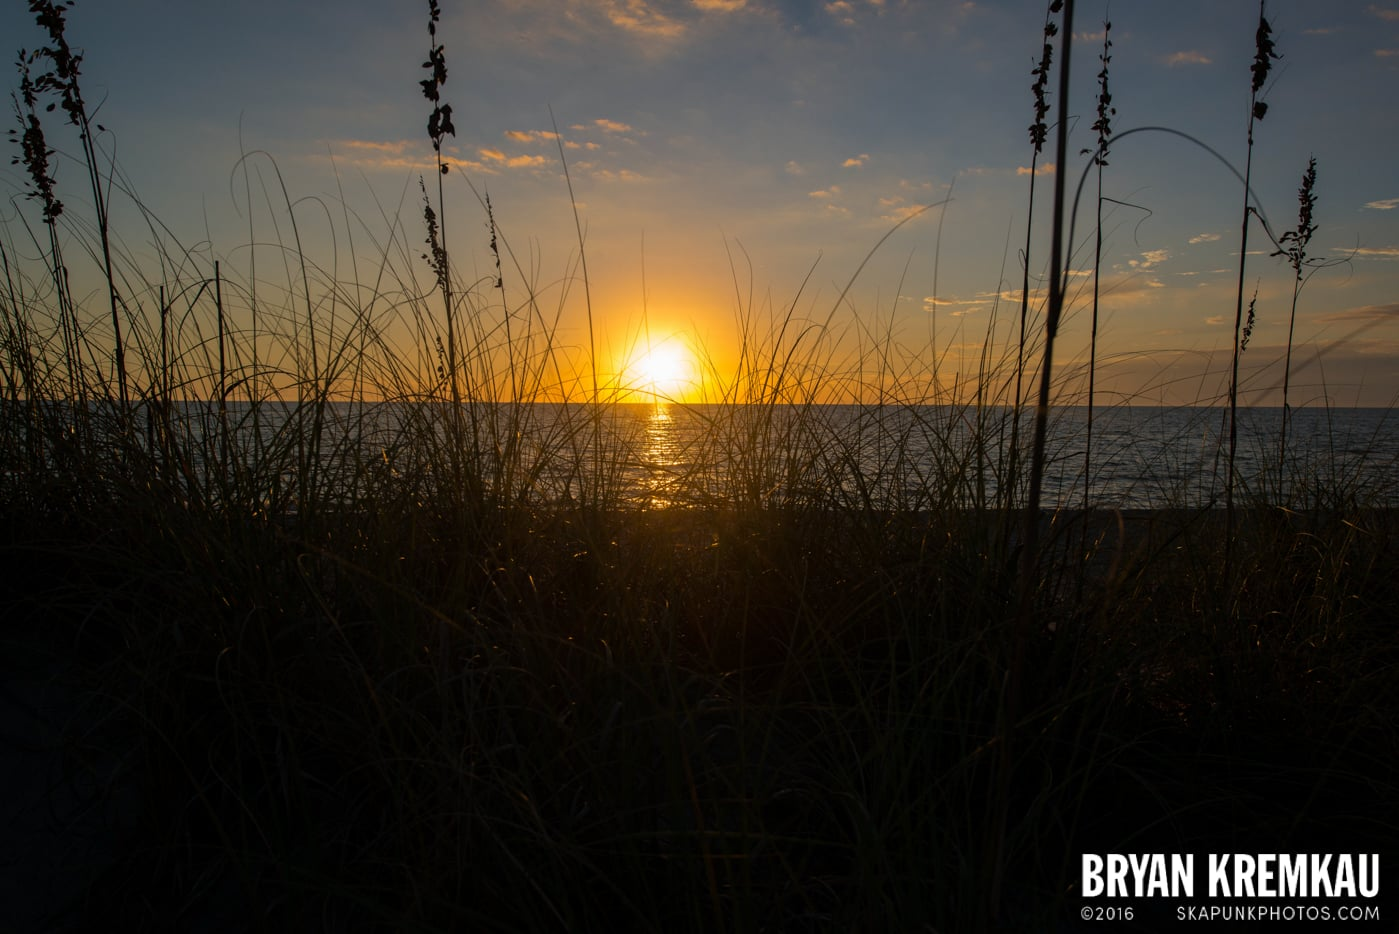 Sunsets, Astrophotography & Birds @ Venice, Florida - 10.25.14 - 11.5.14 (119)